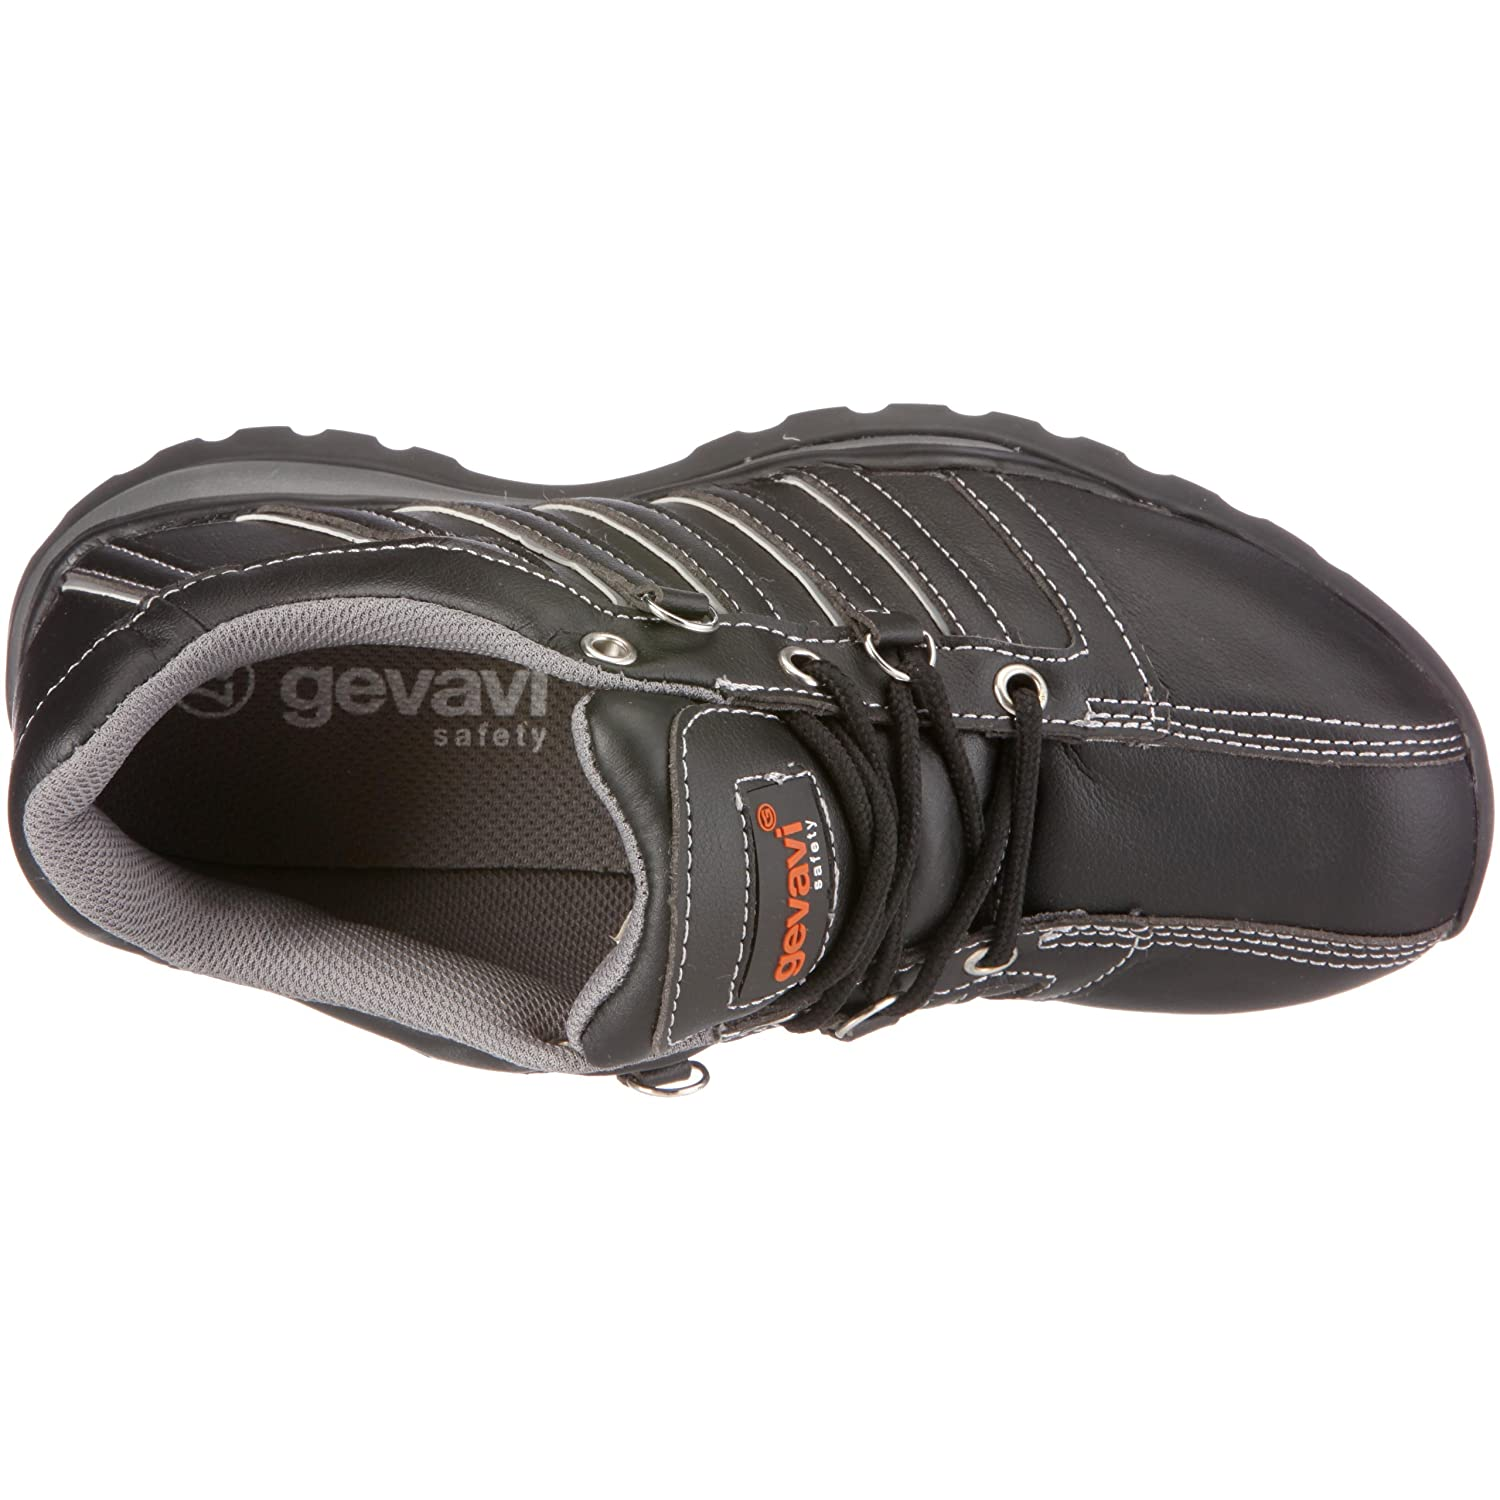 Safety Gs 47, Womens Boots Gevavi